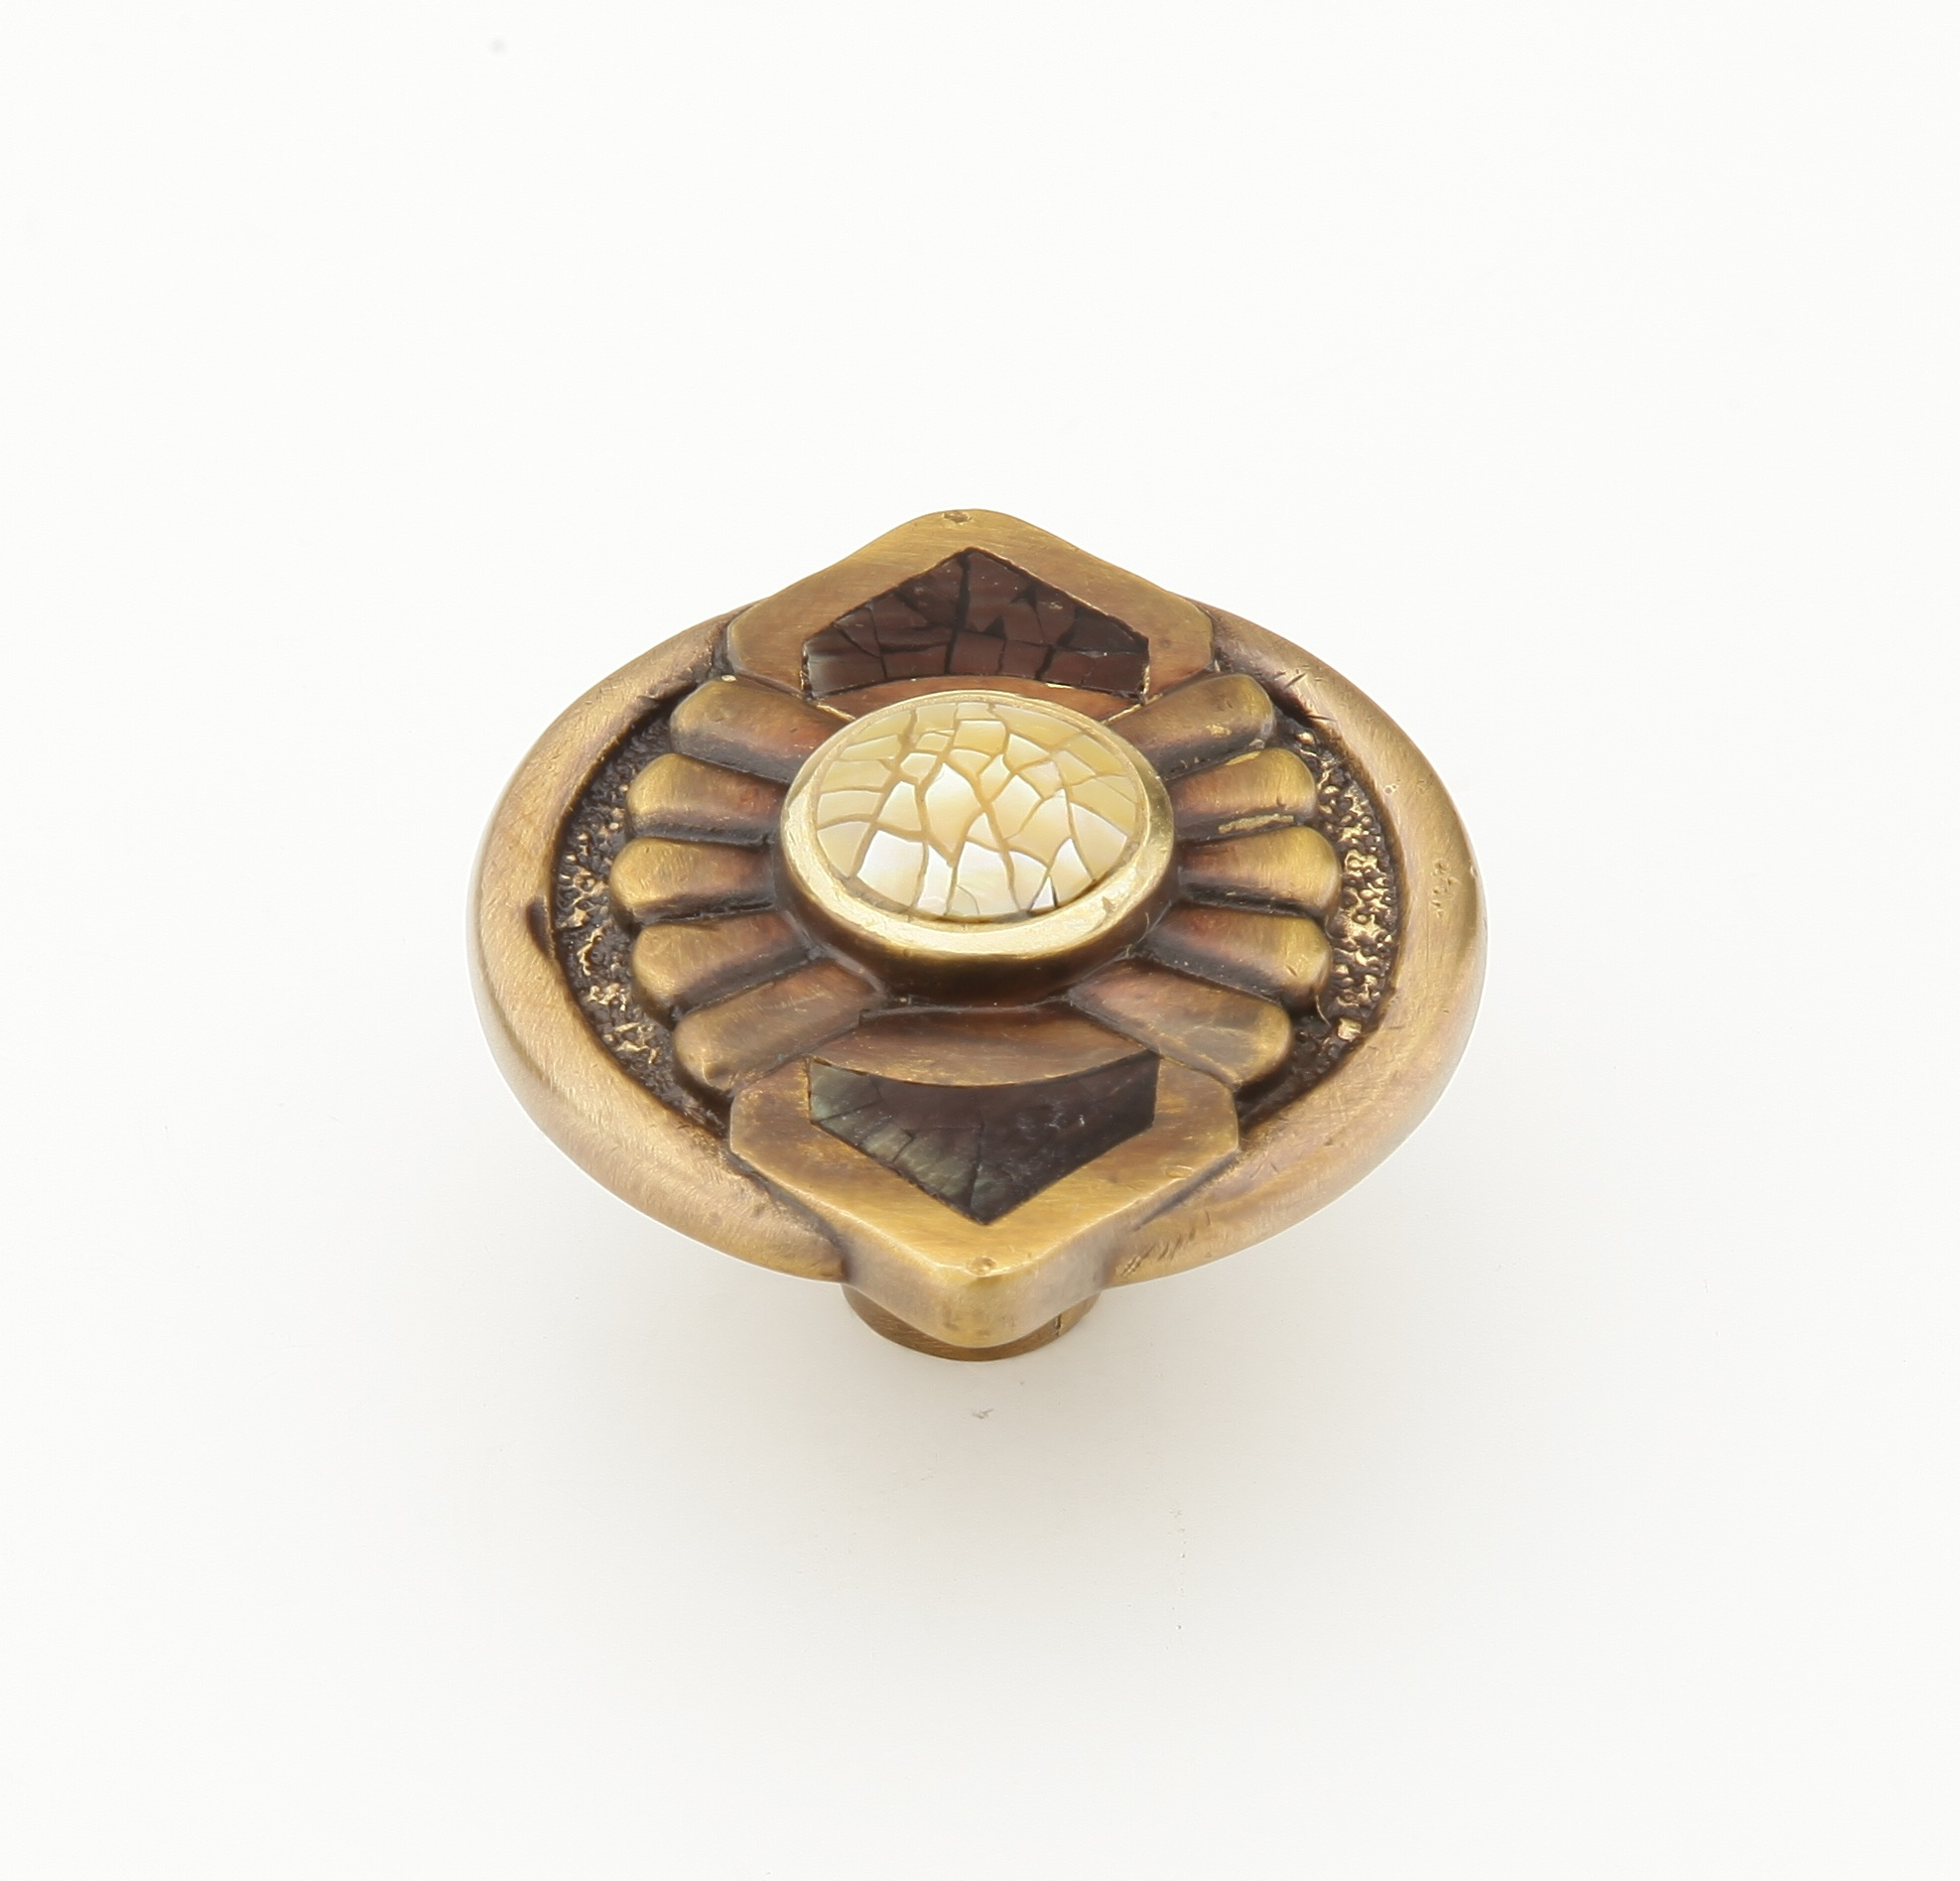 Schaub 958K Heirloom Knob - Antique Brass